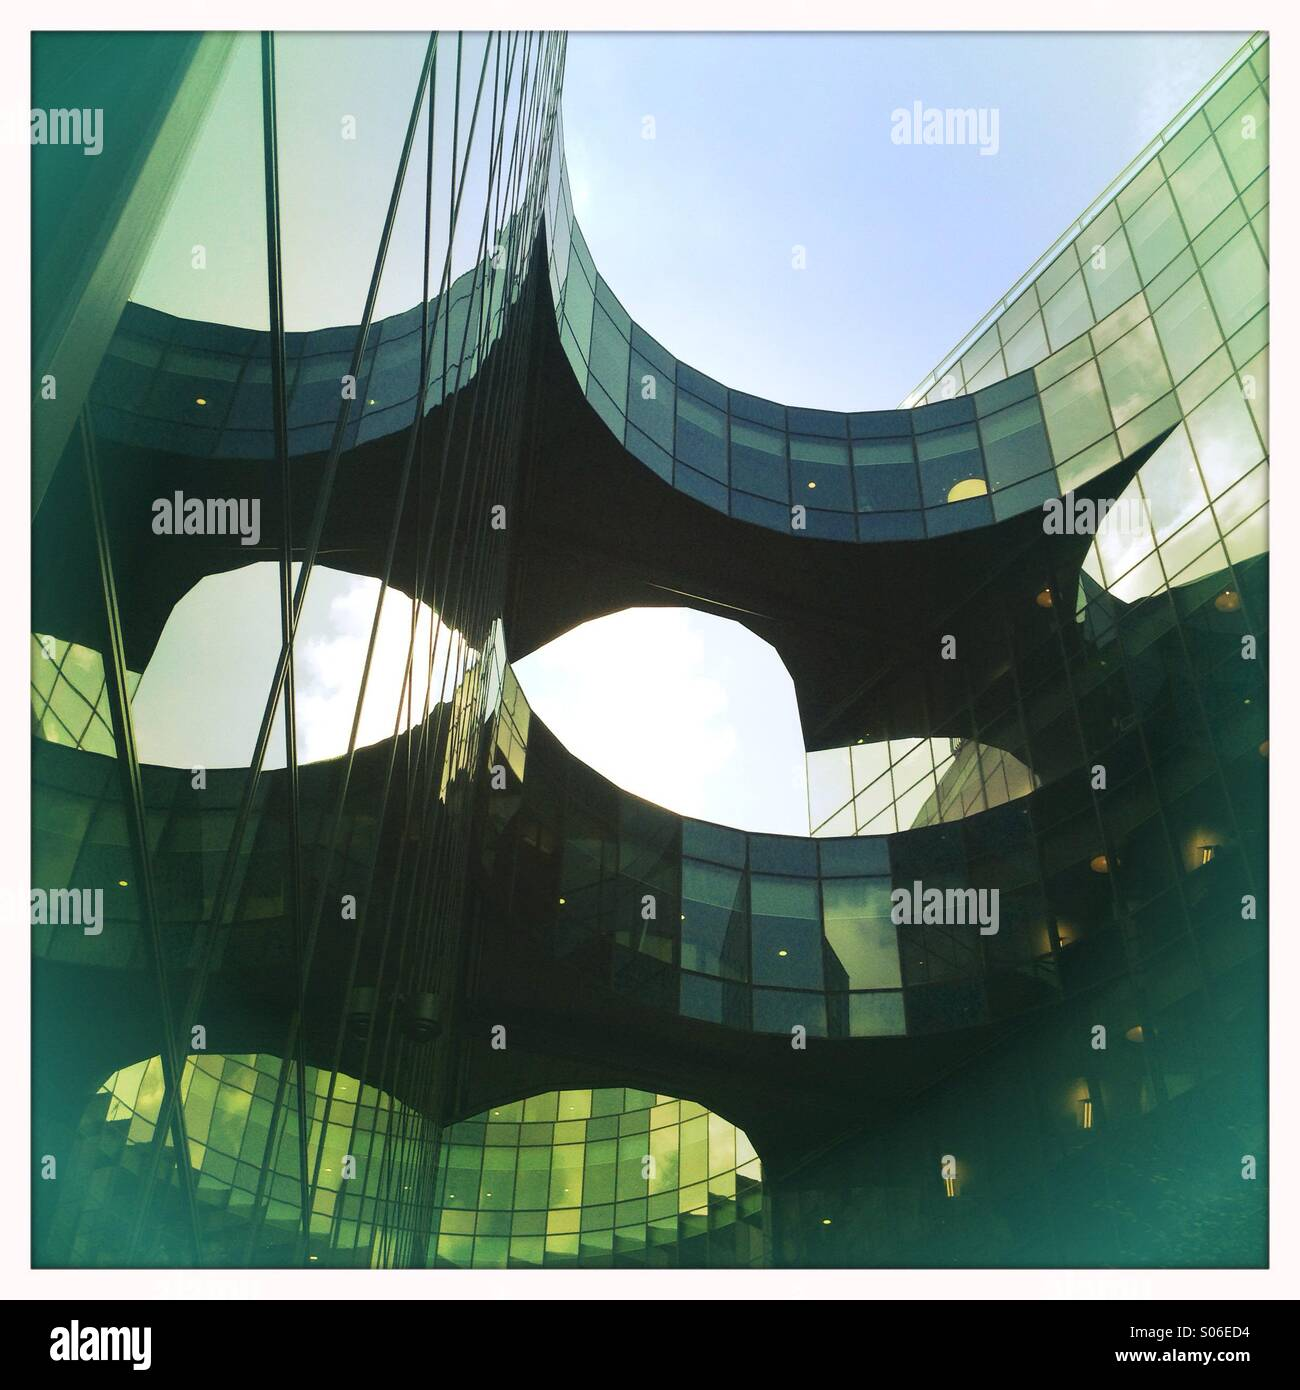 Abstract architecture, The More London - Stock Image